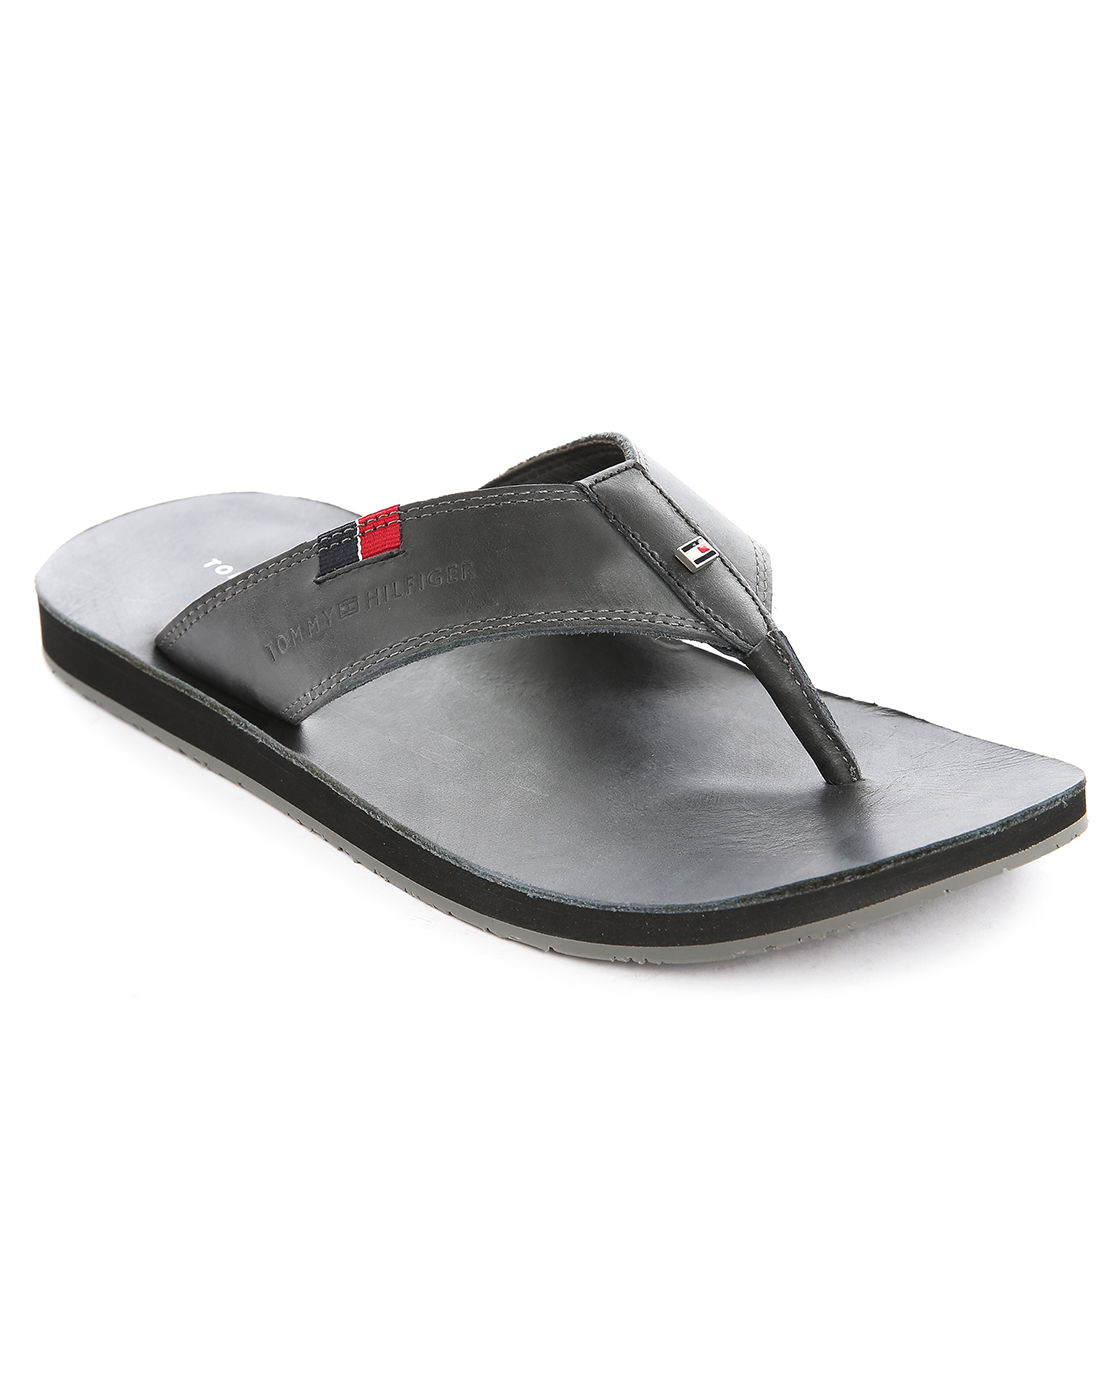 flip flops hilfiger herren sale tommy hilfiger stiefel. Black Bedroom Furniture Sets. Home Design Ideas